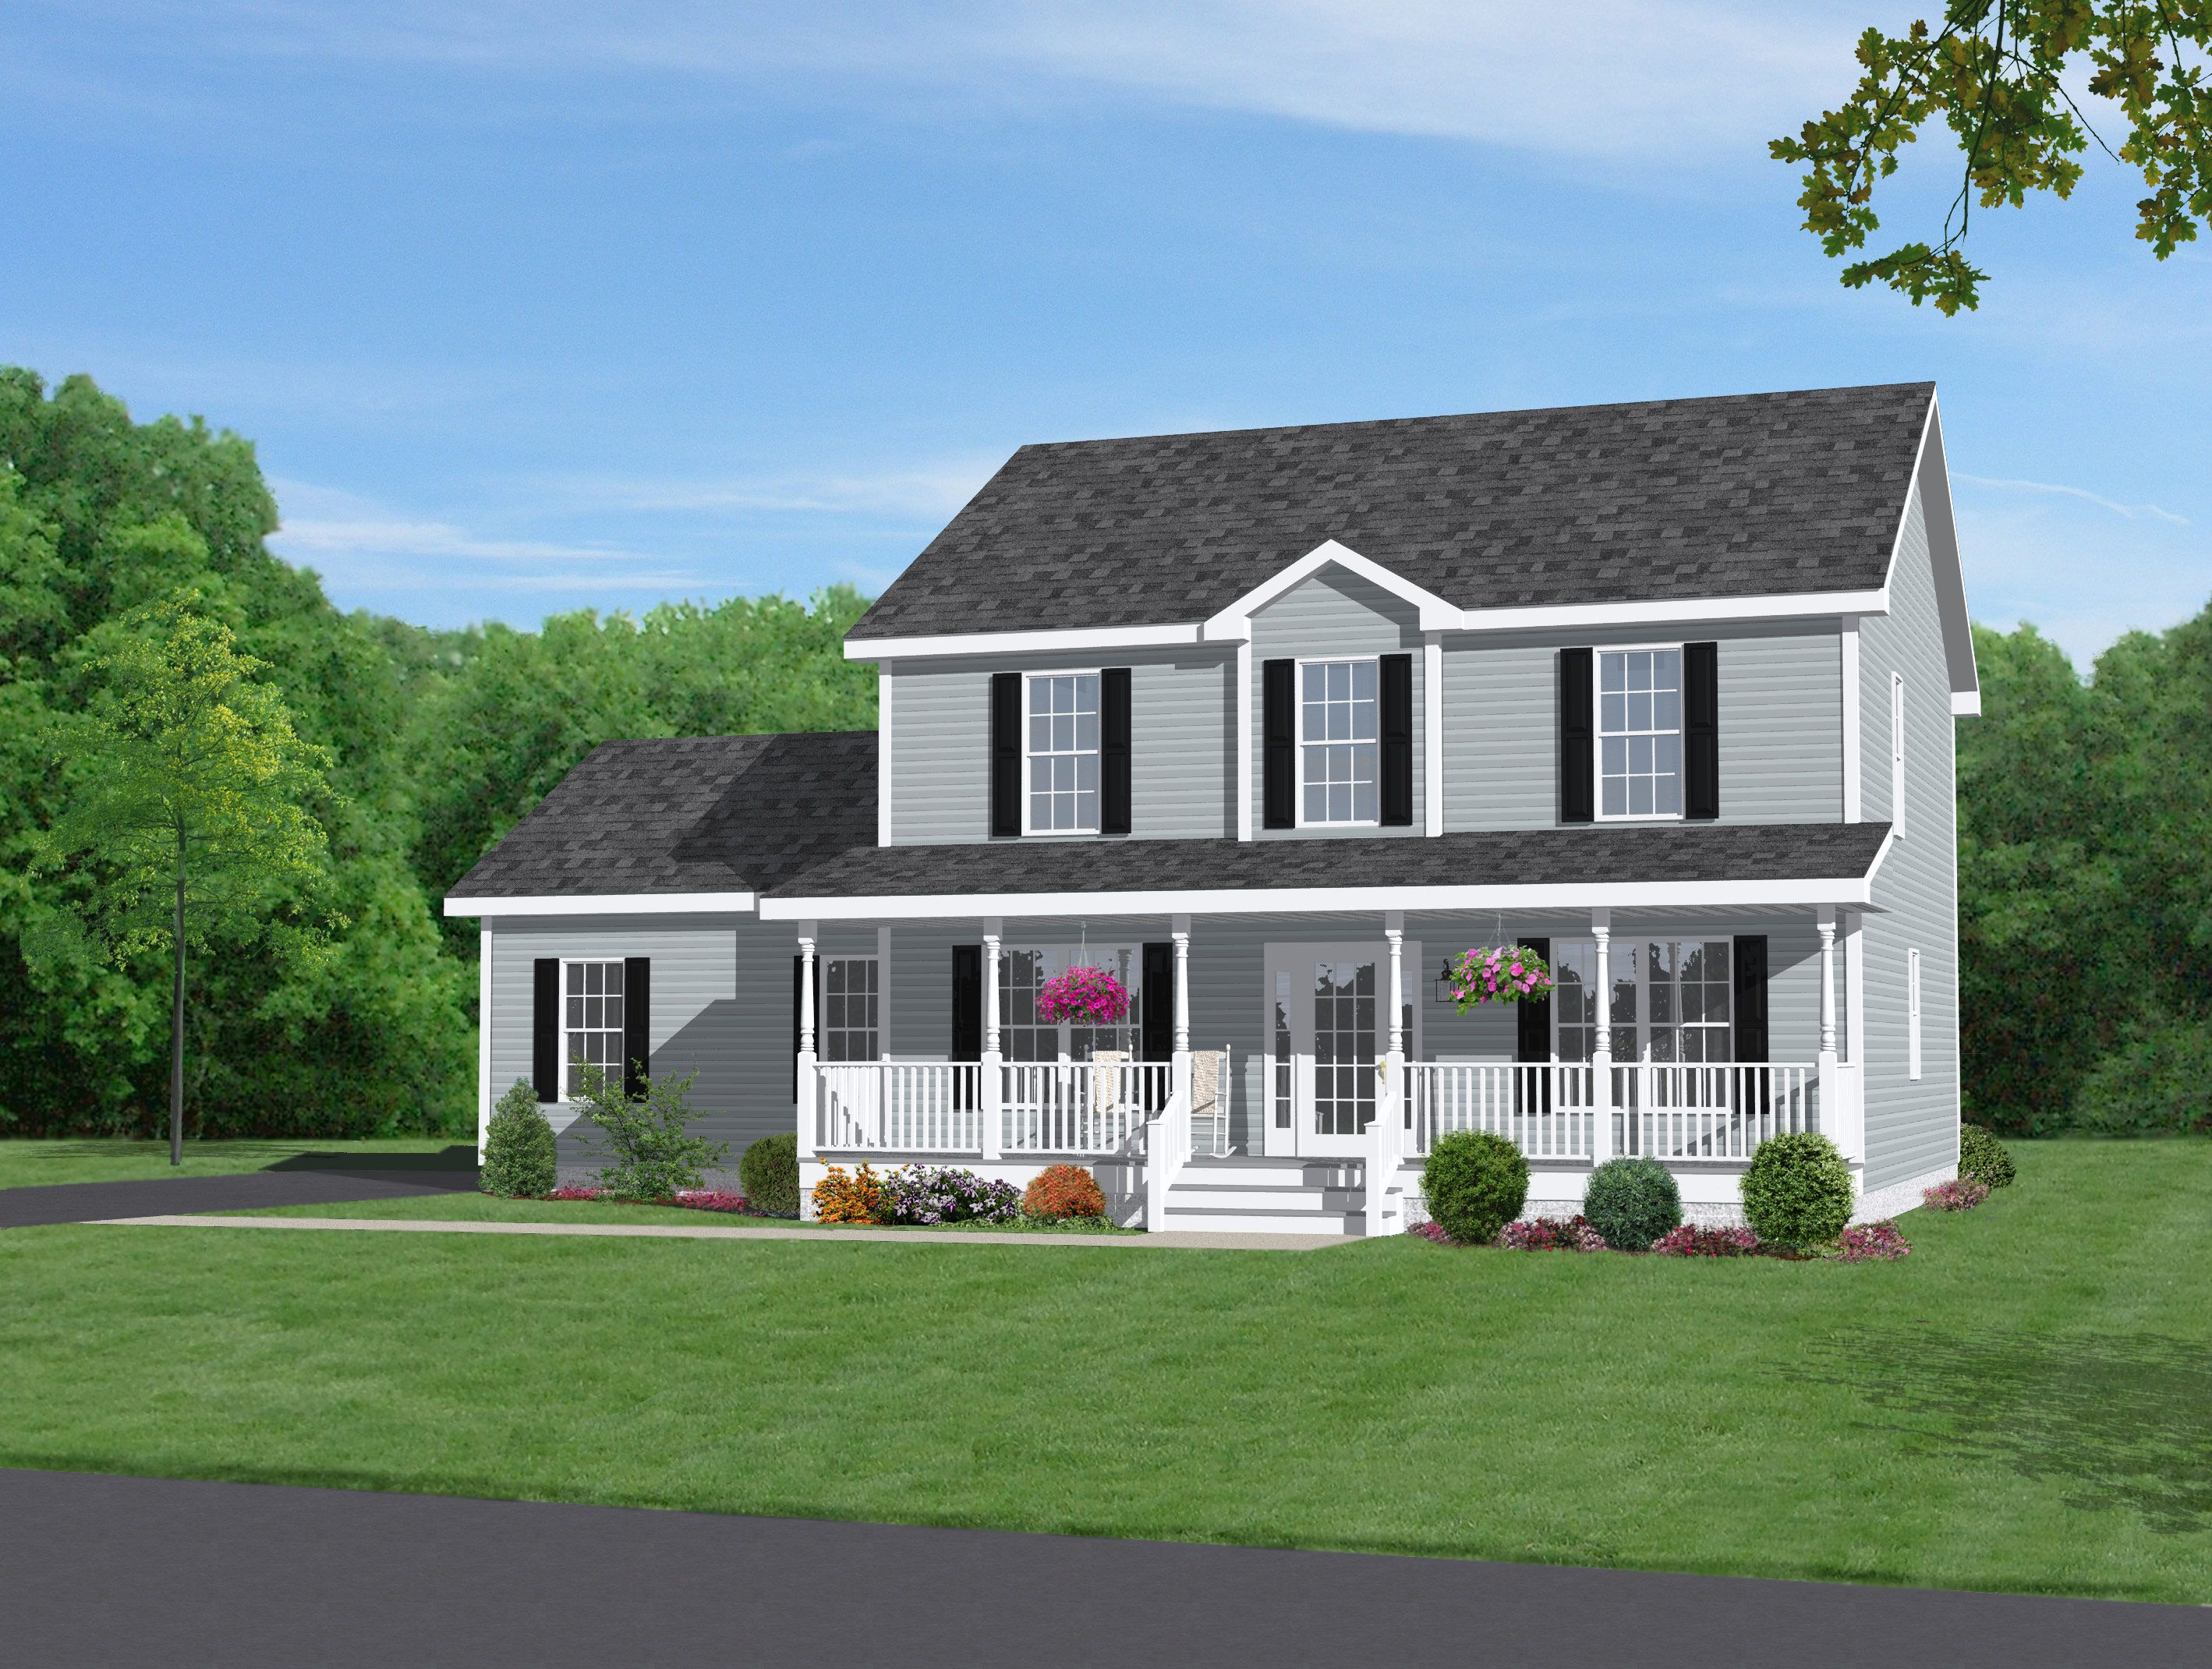 Two story home with beautiful front porch dream home House plans two storey